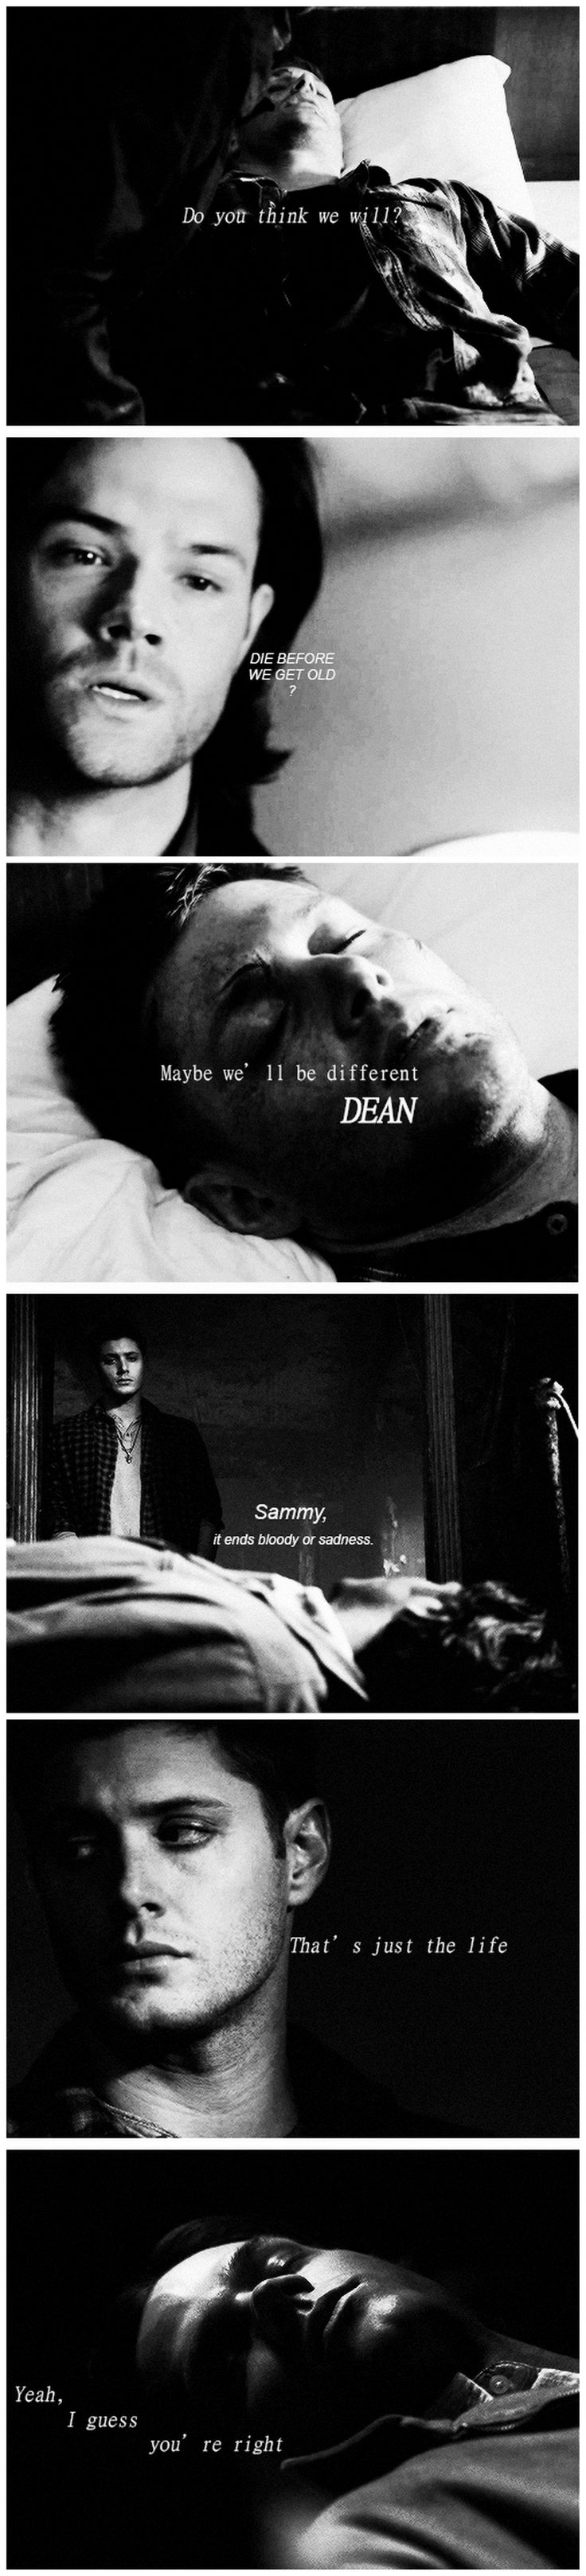 2x22 All Hell Breaks Loose (Part 2) and 9x23 Do You Believe In Miracles #SPN #Dean #Sam